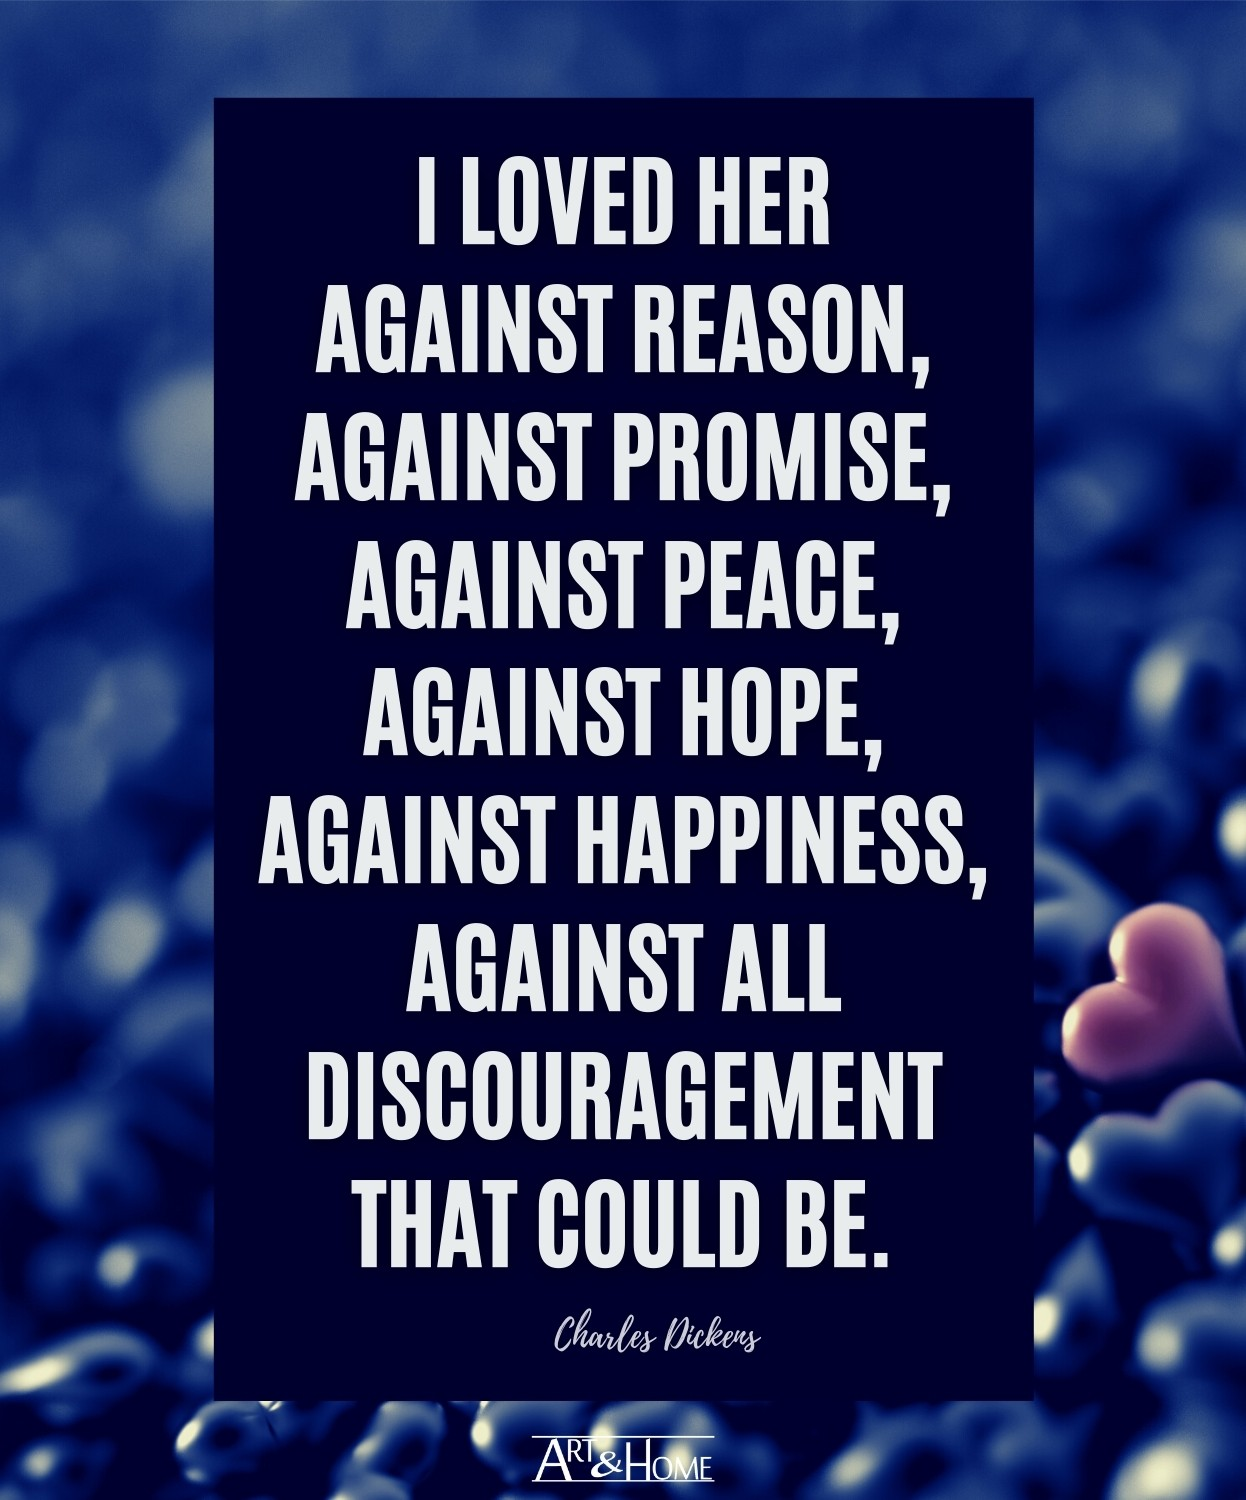 Charles Dickens Love Quote for Her